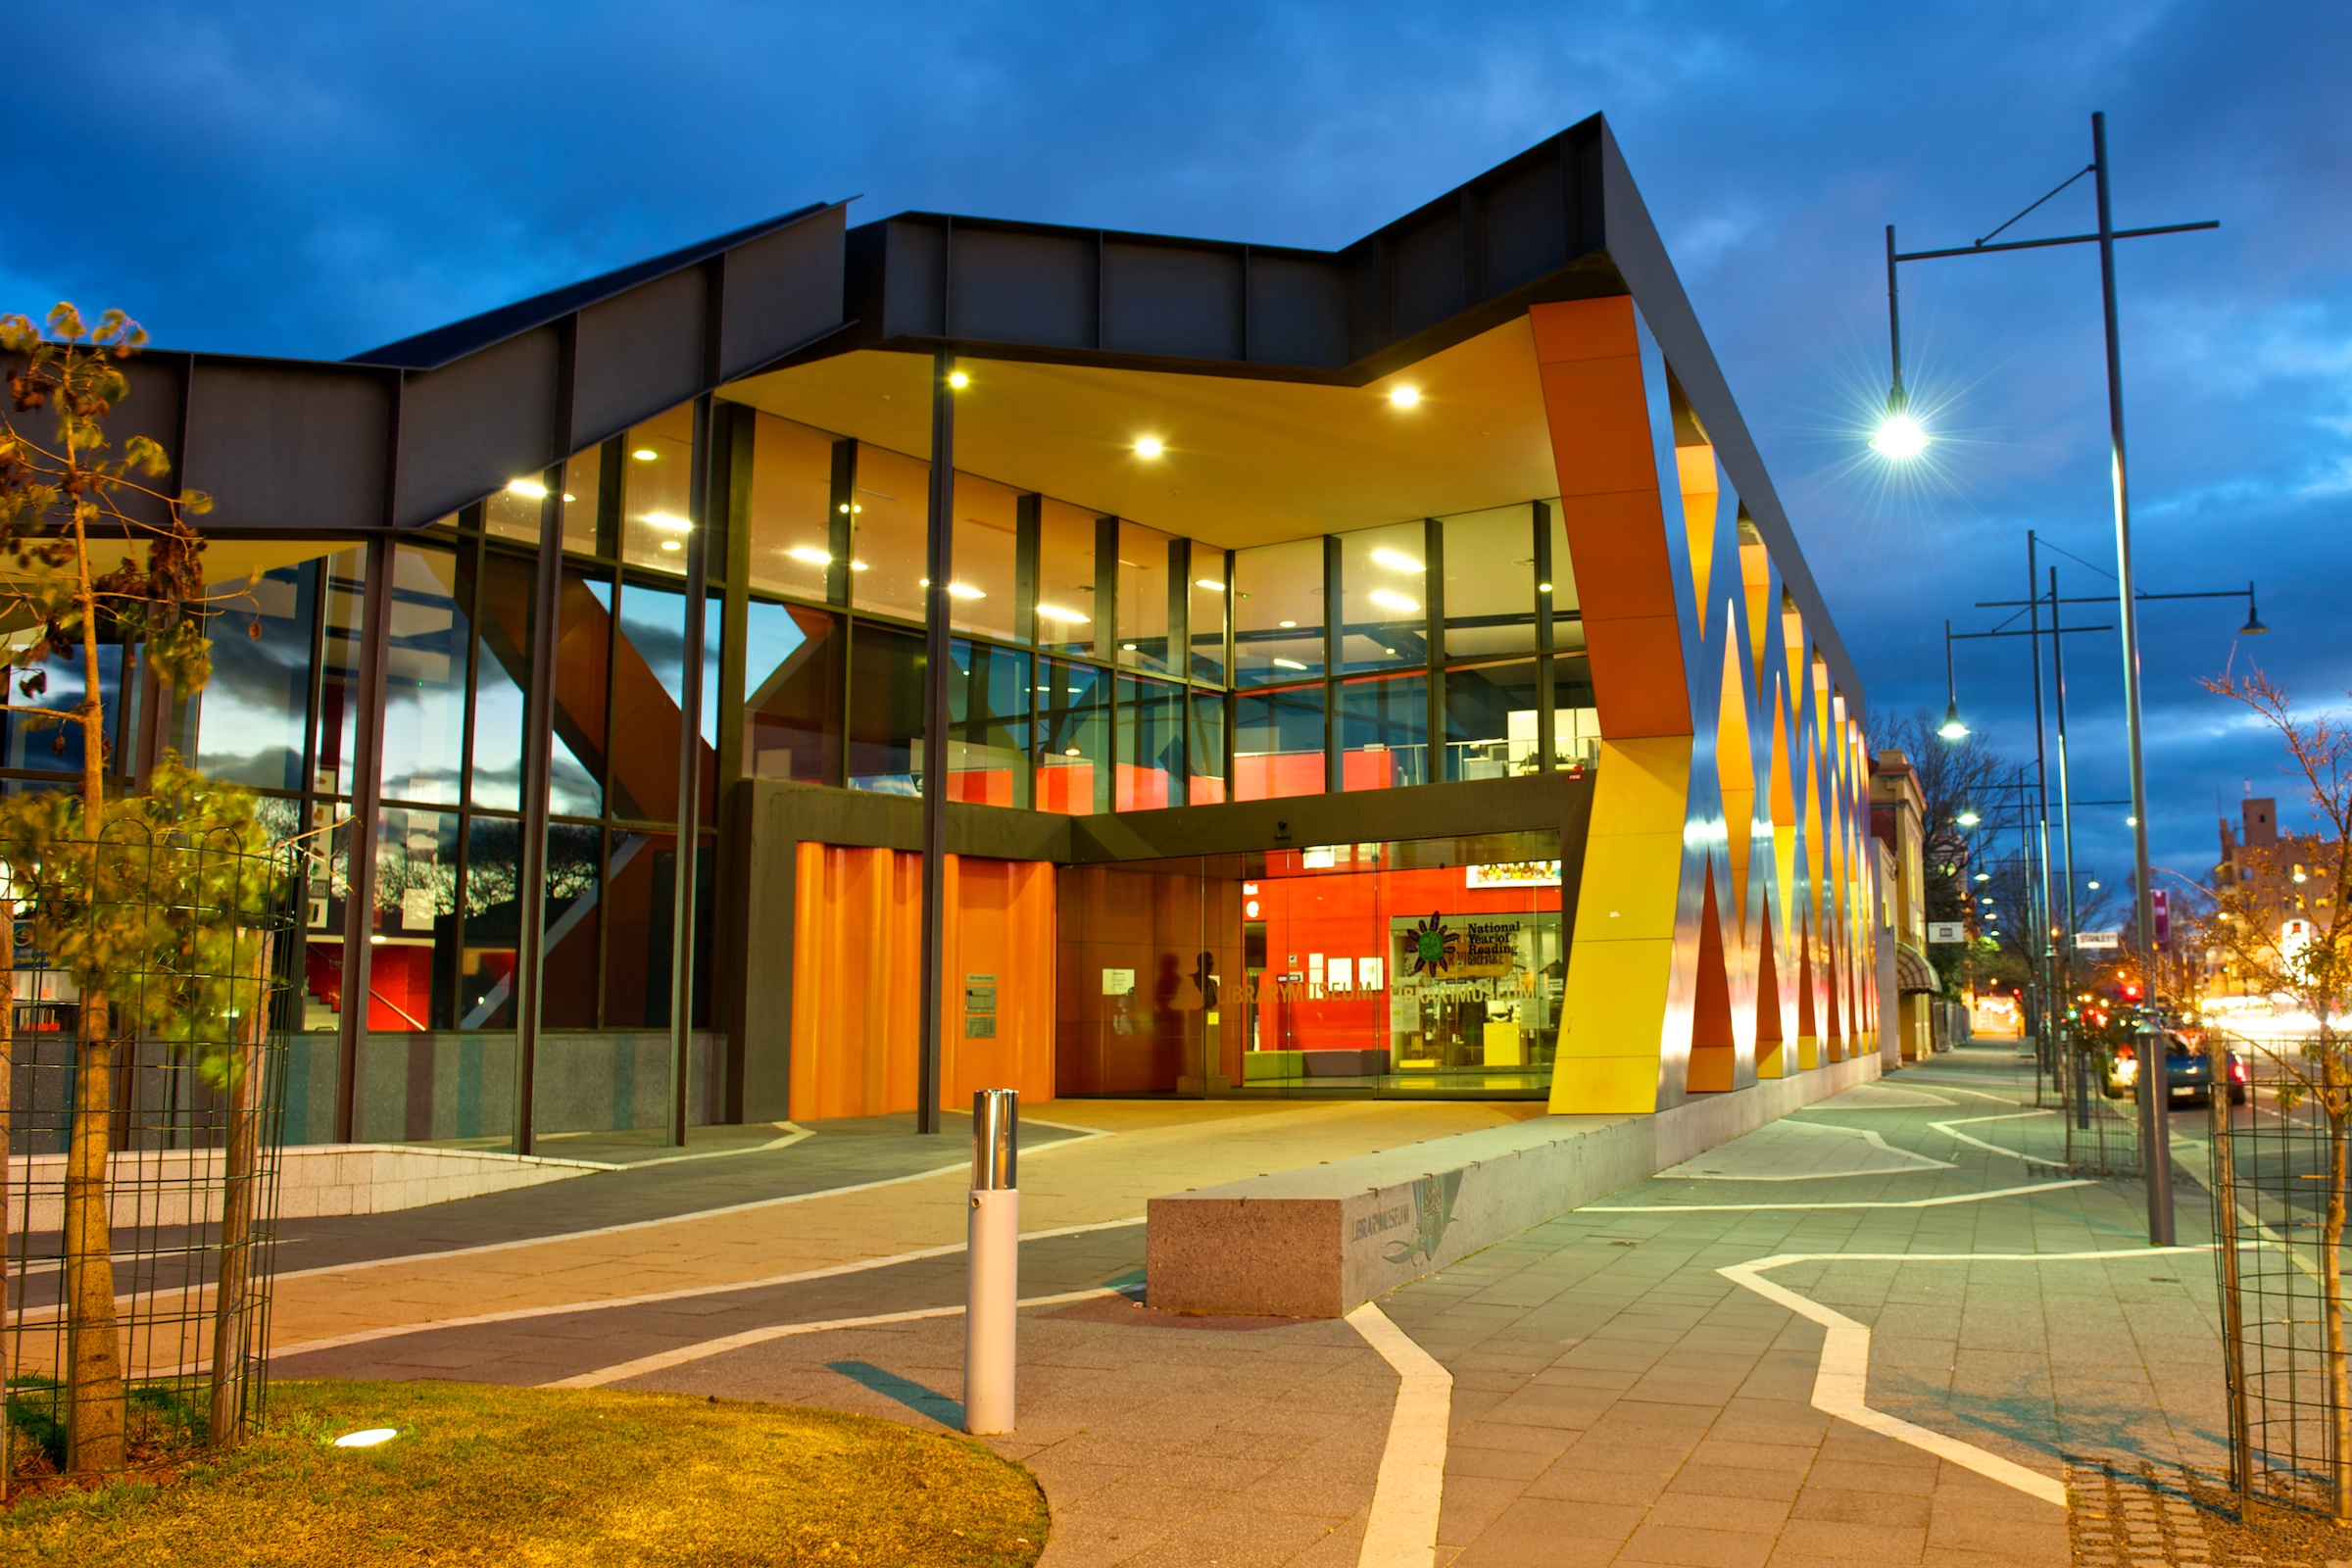 photo of a modern library building lit up at early evening